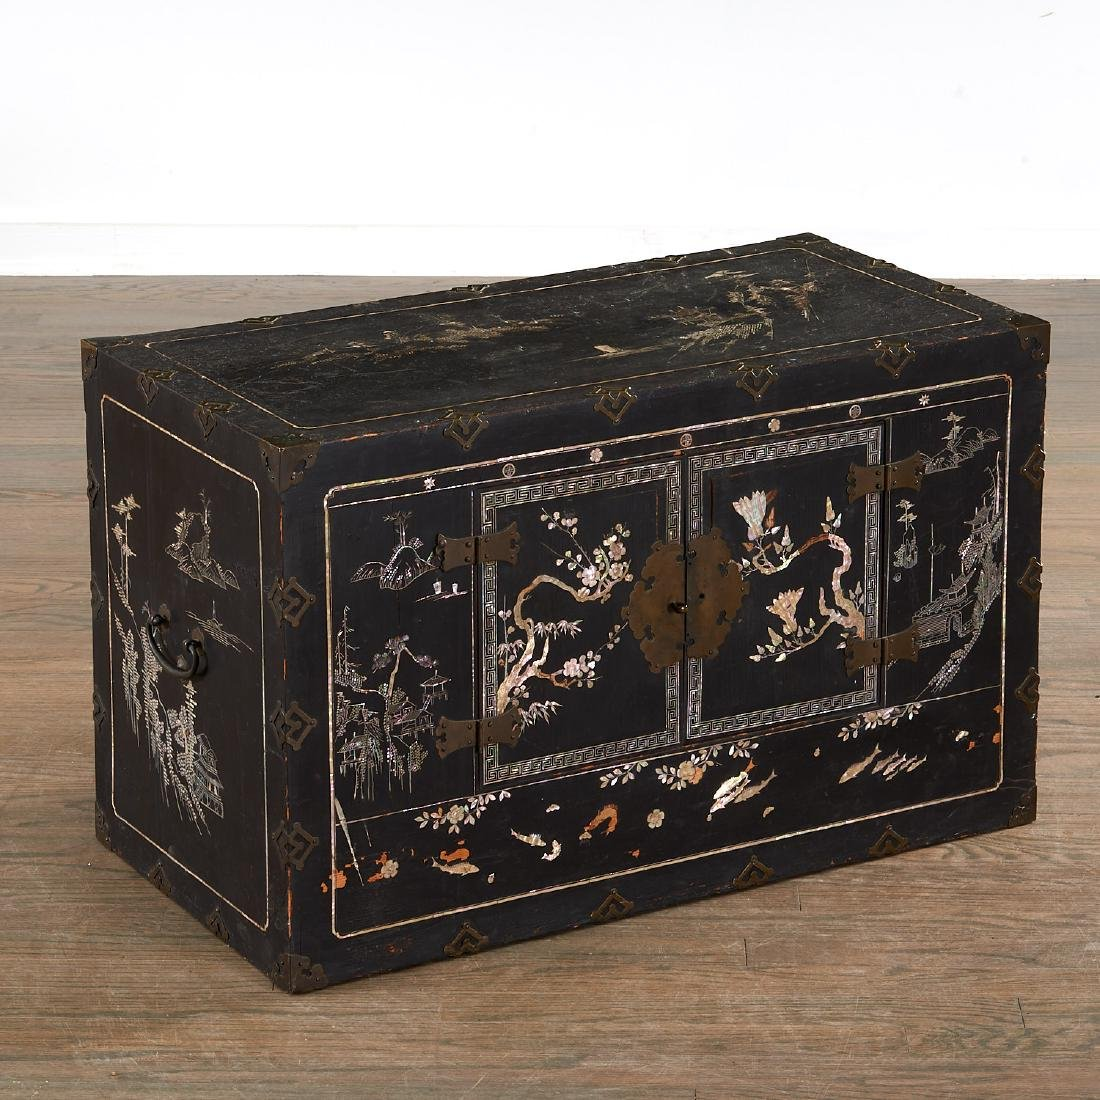 Chinese/Korean mother of pearl inlaid chest